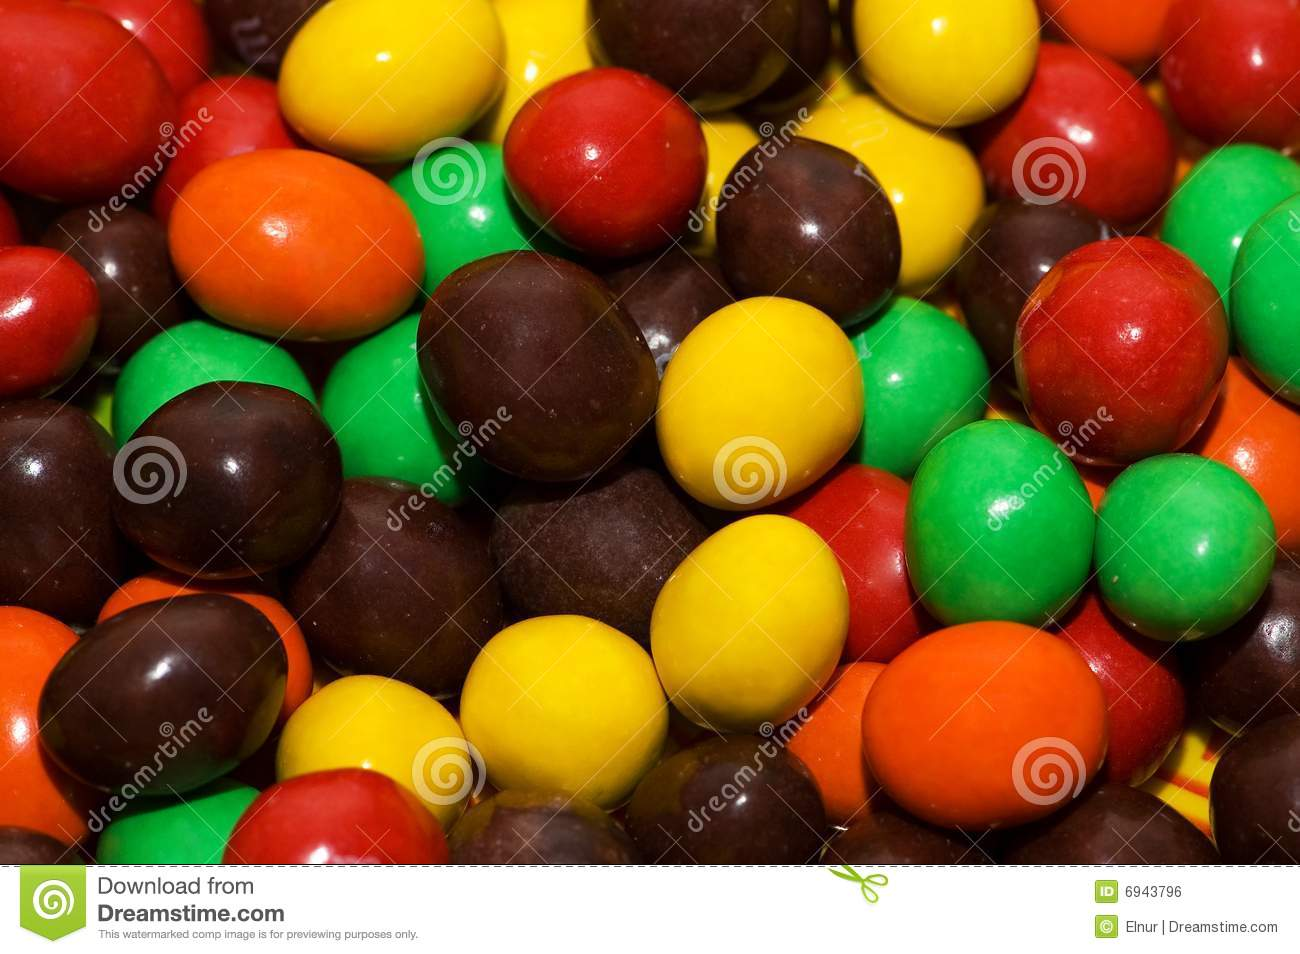 Chocolate coated candy chocolate pattern chocolate background - Various Colourful Sweets Royalty Free Stock Image Image